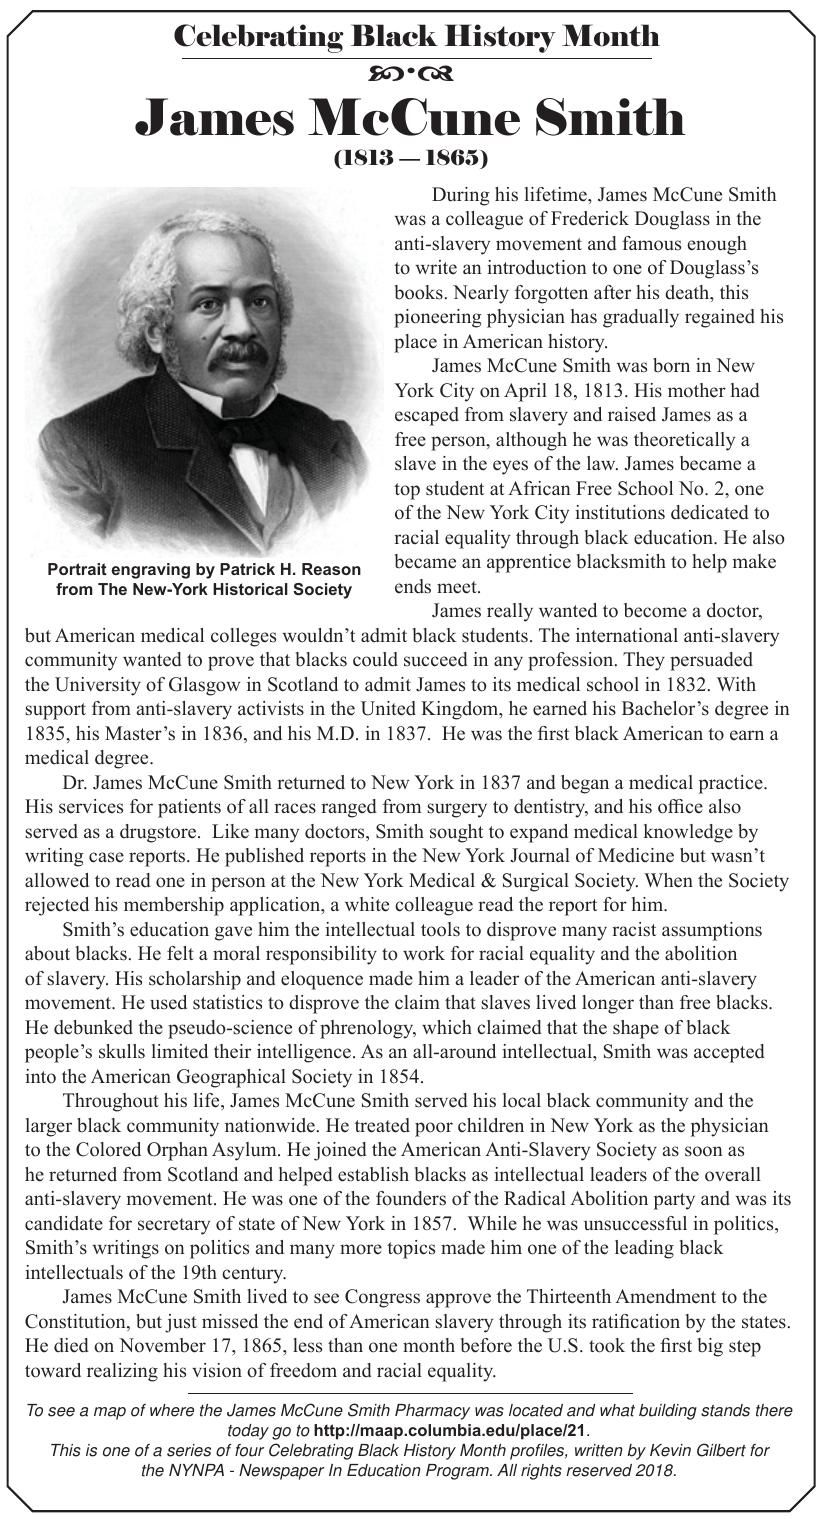 Black History Month profile: James McCune Smith